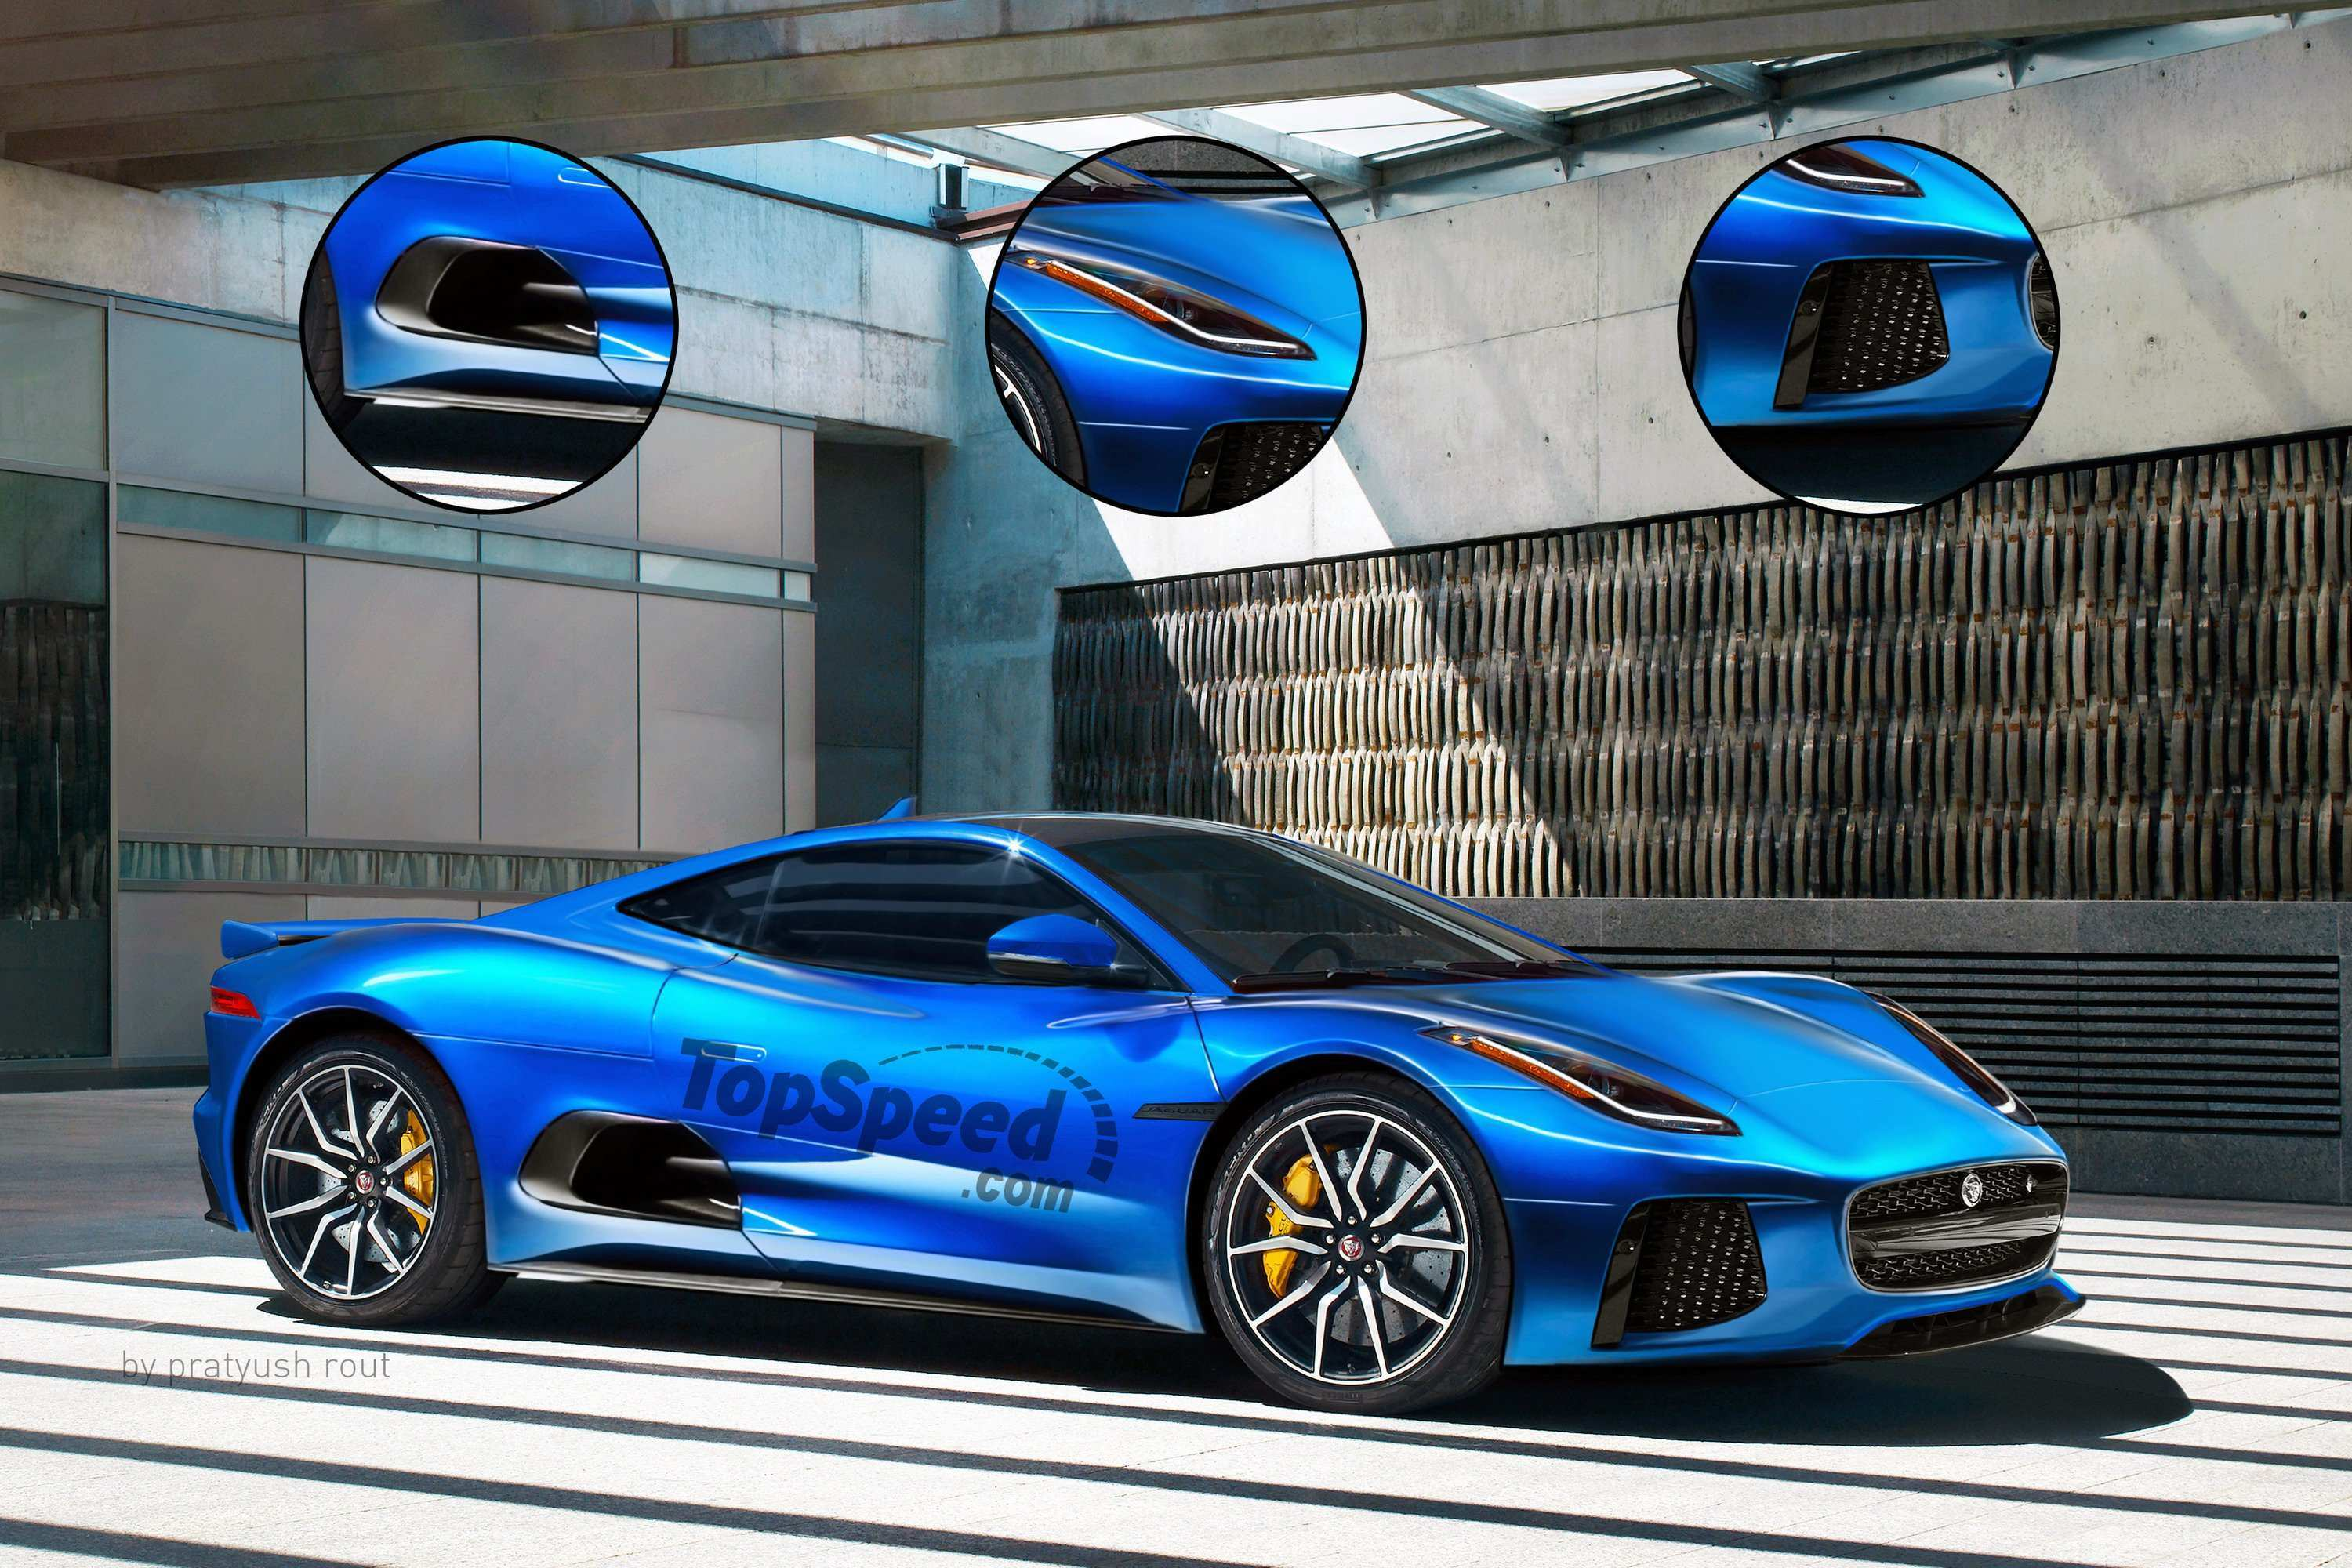 20 New 2020 Jaguar XK Exterior and Interior with 2020 Jaguar XK